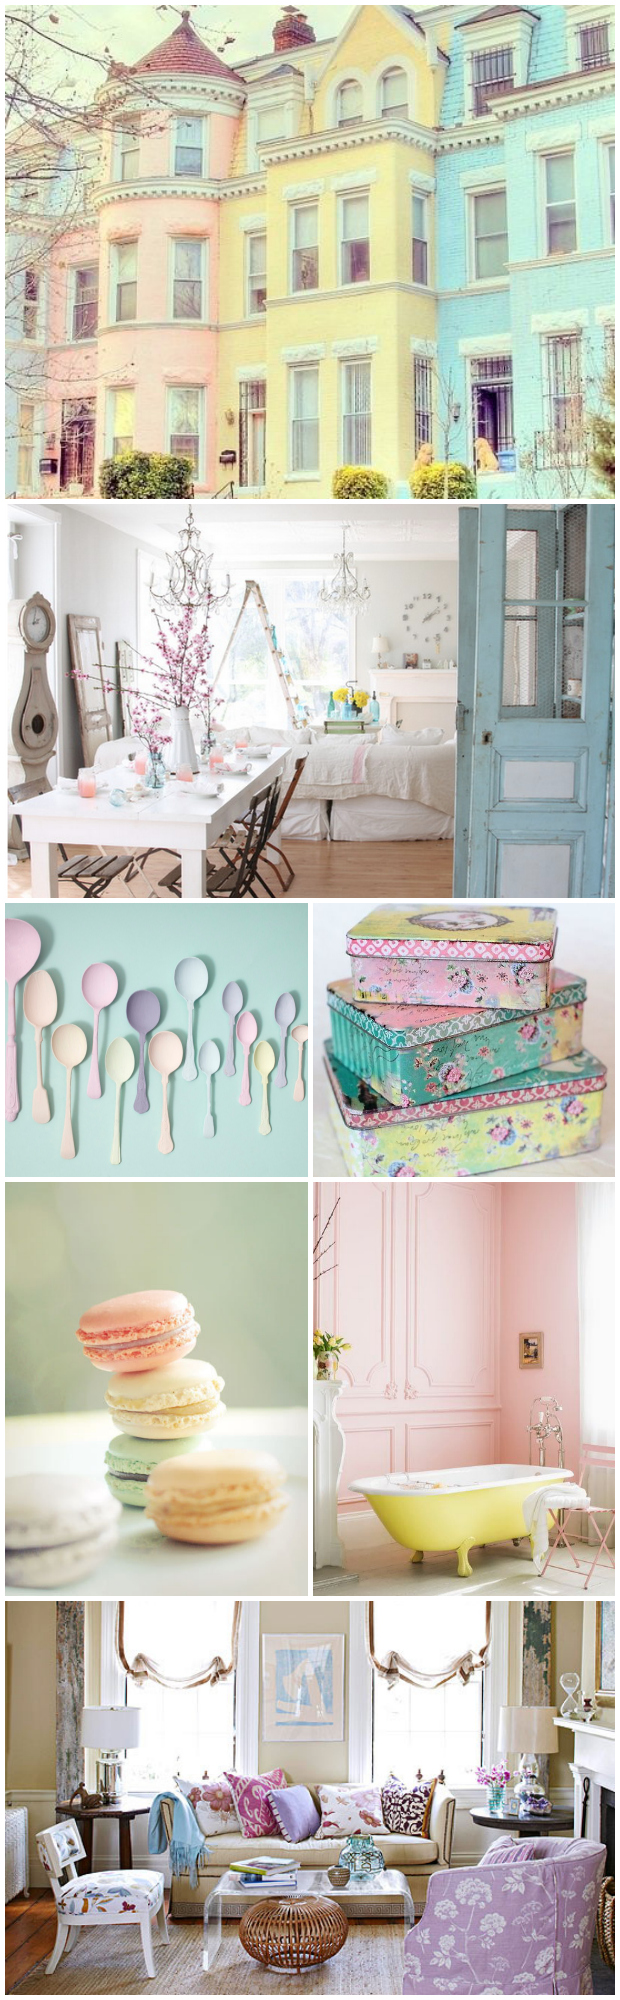 pastel trend in home decor